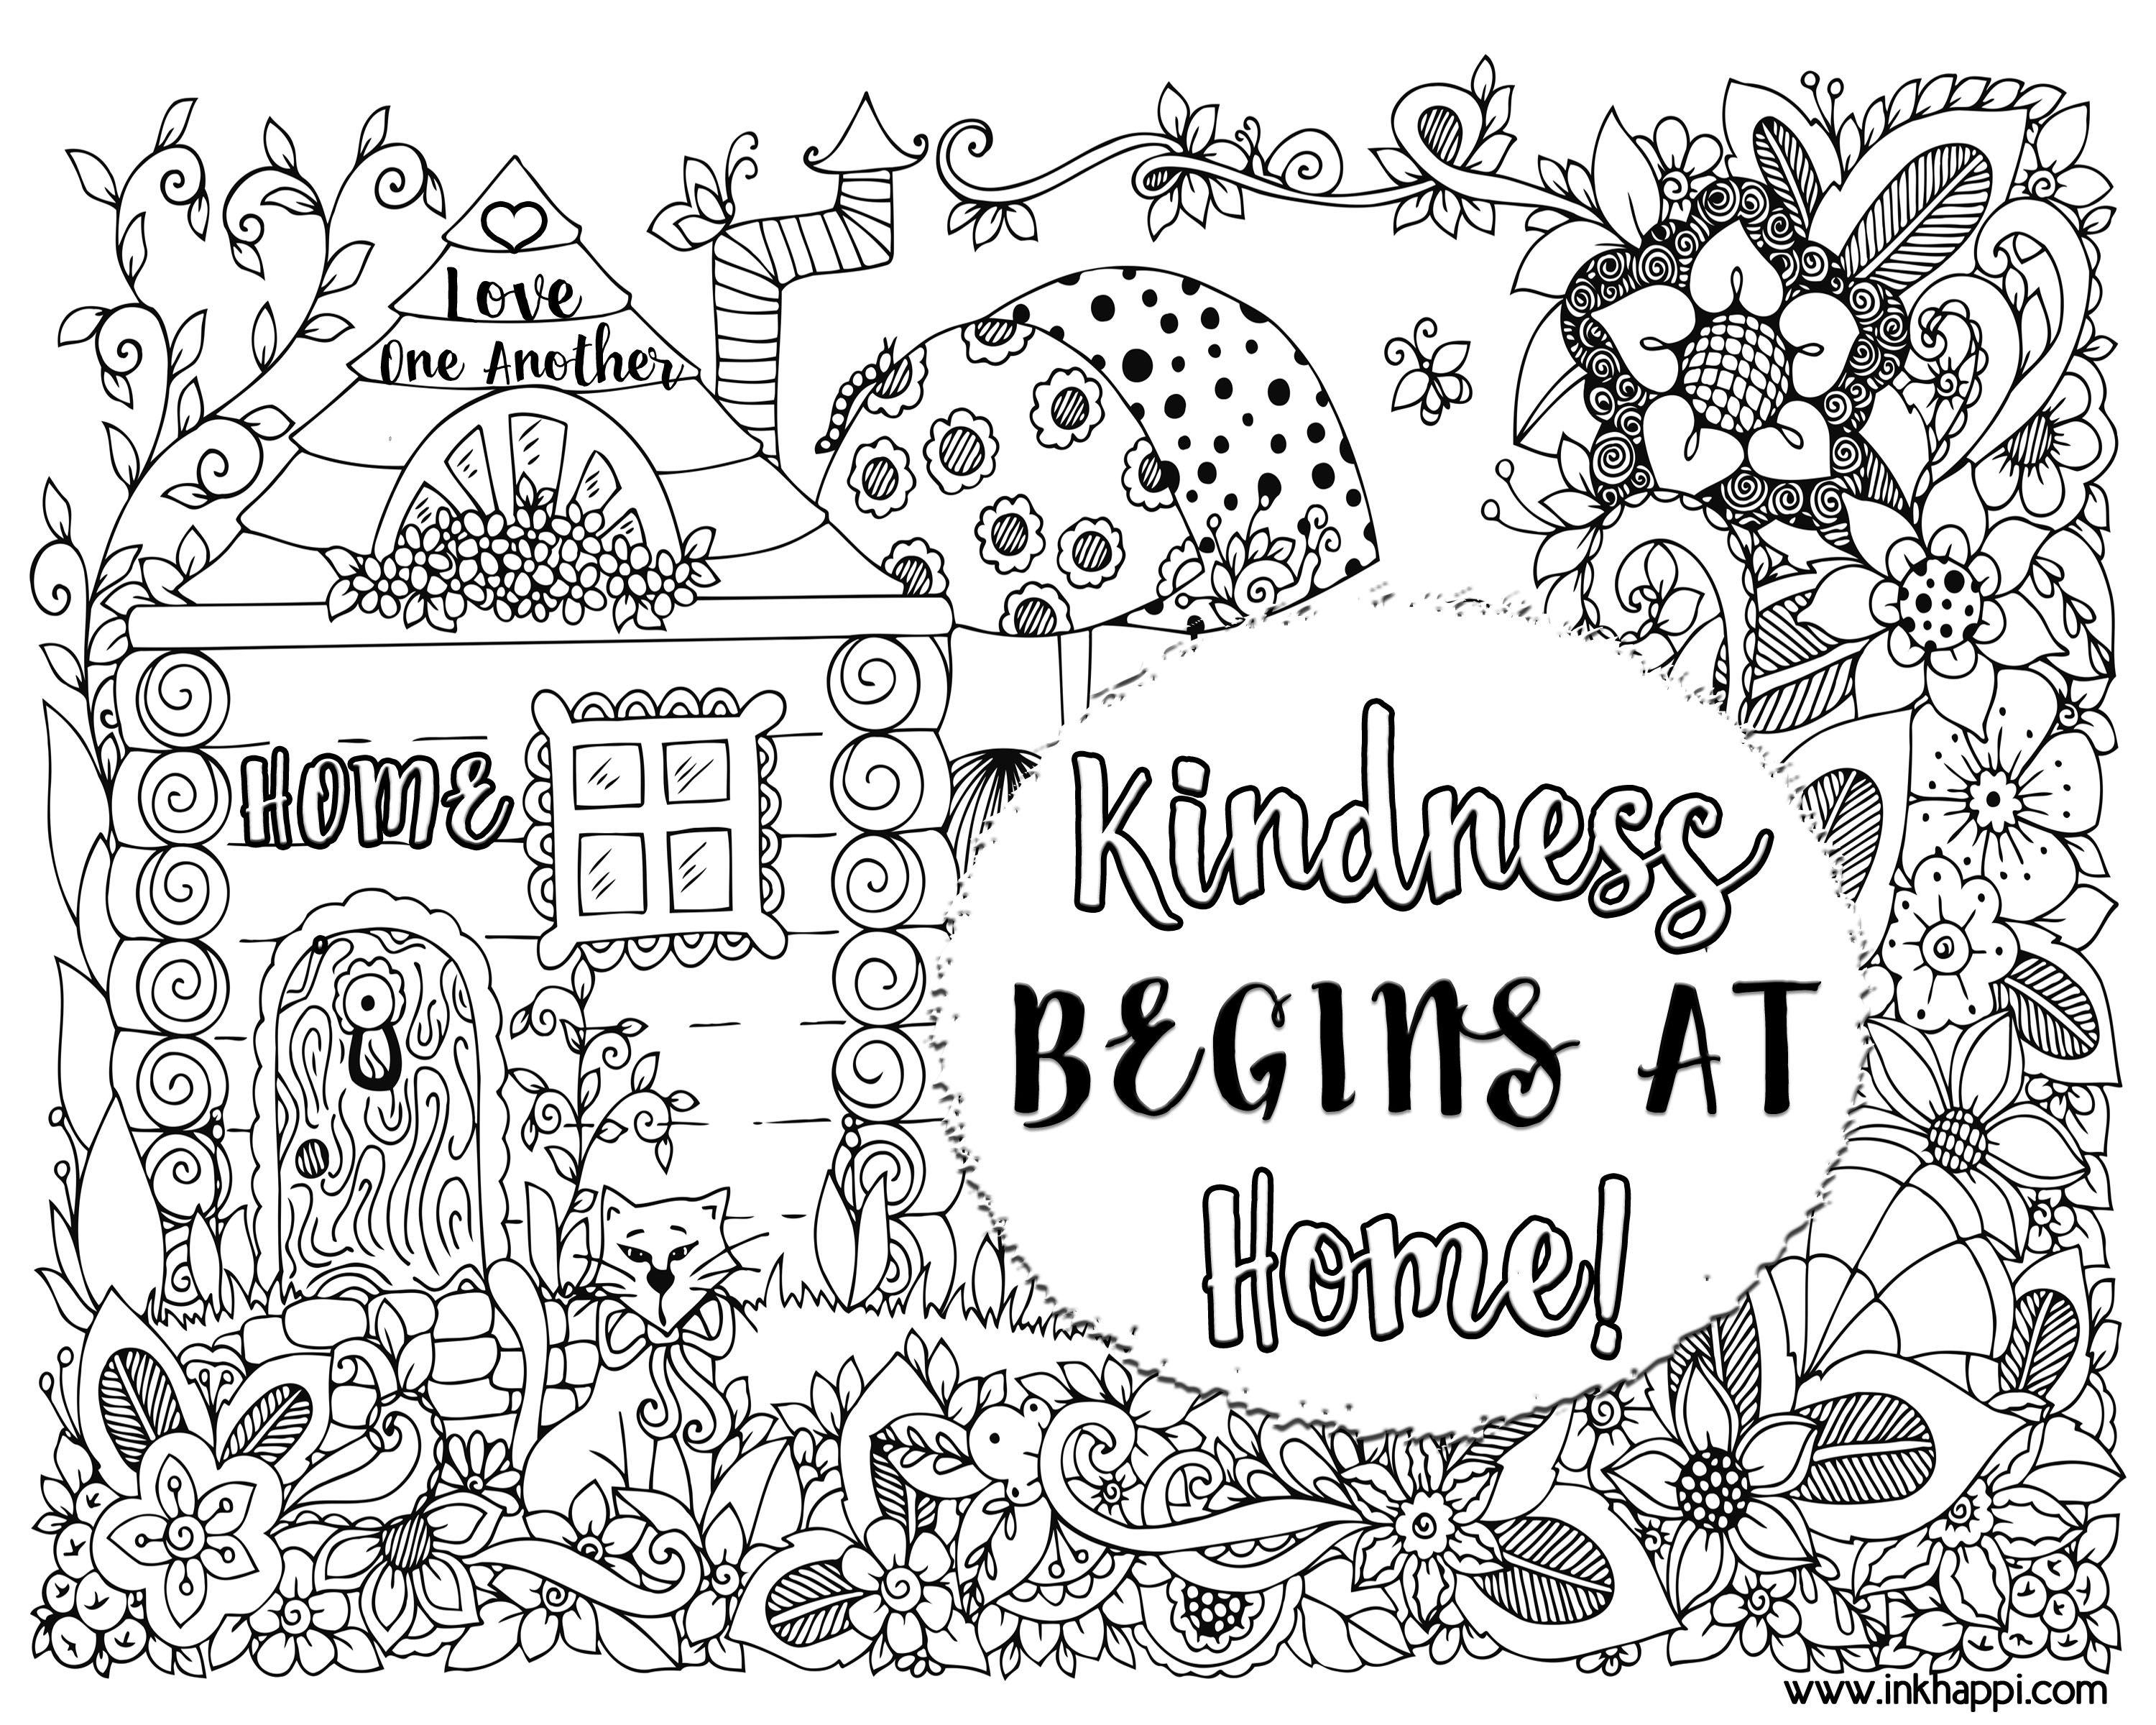 Kindness Begins At Home A Coloring Page And A Message Bunny